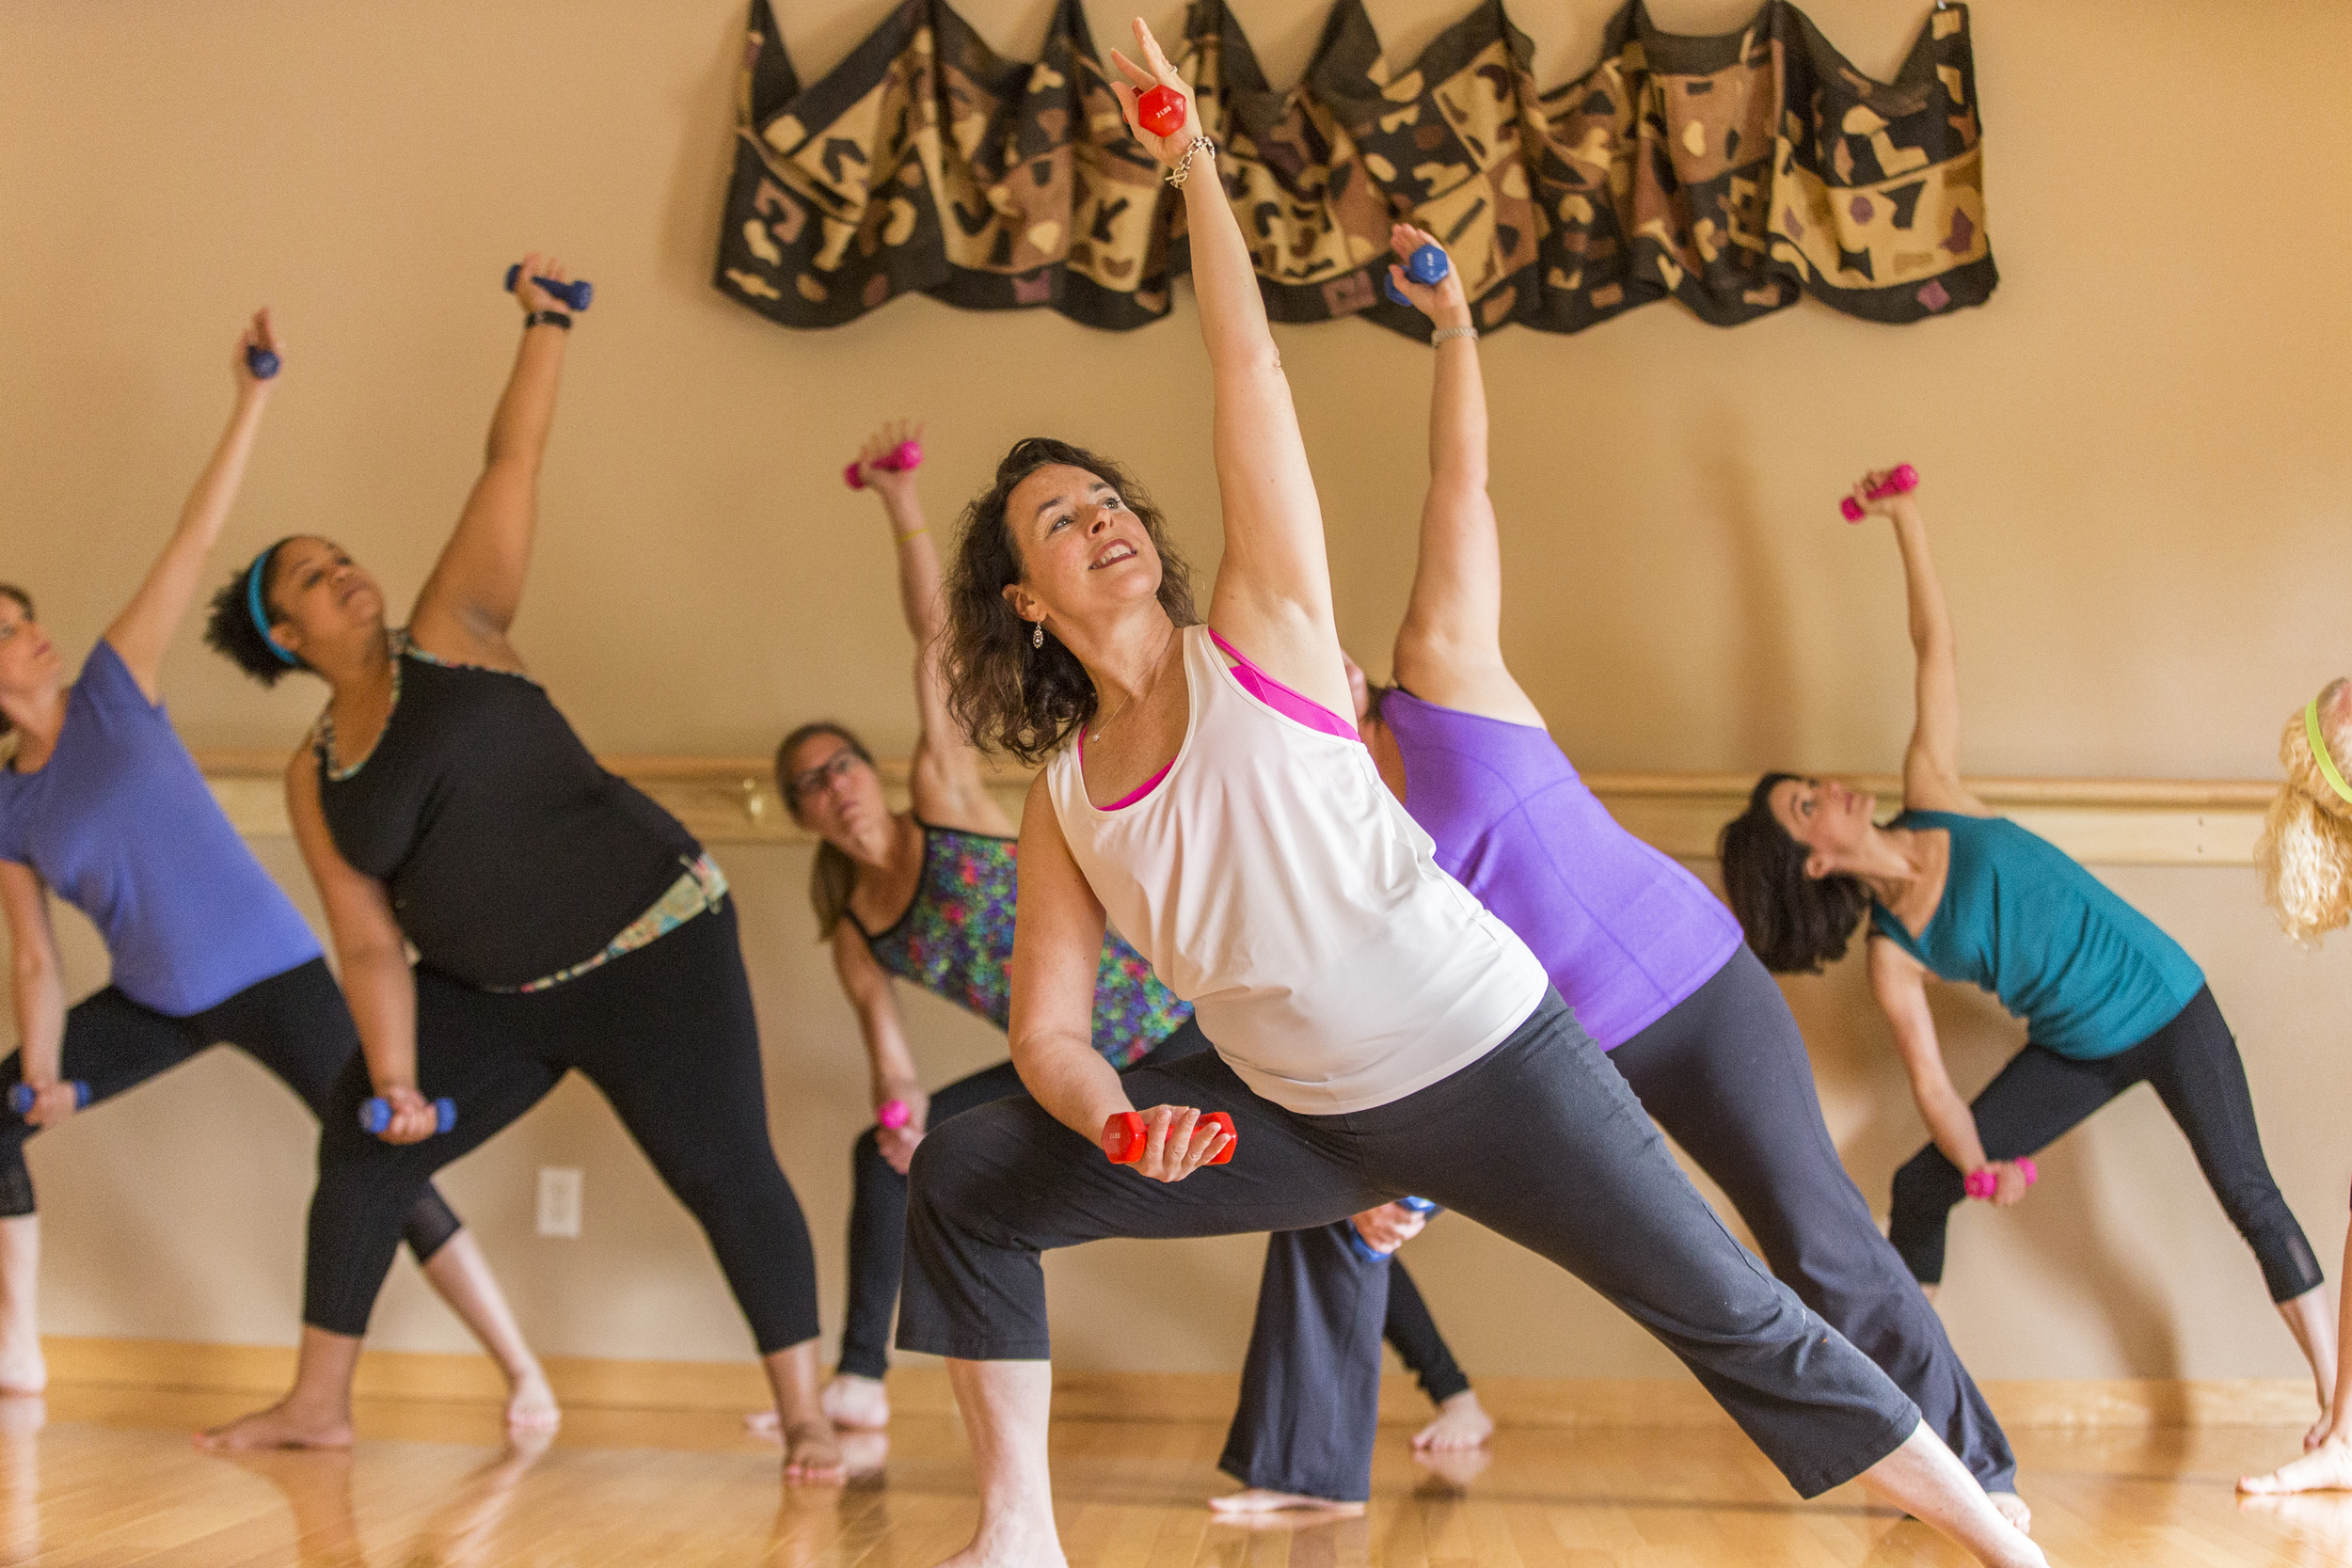 merry-beth-freienmuth-twin-cities-yoga